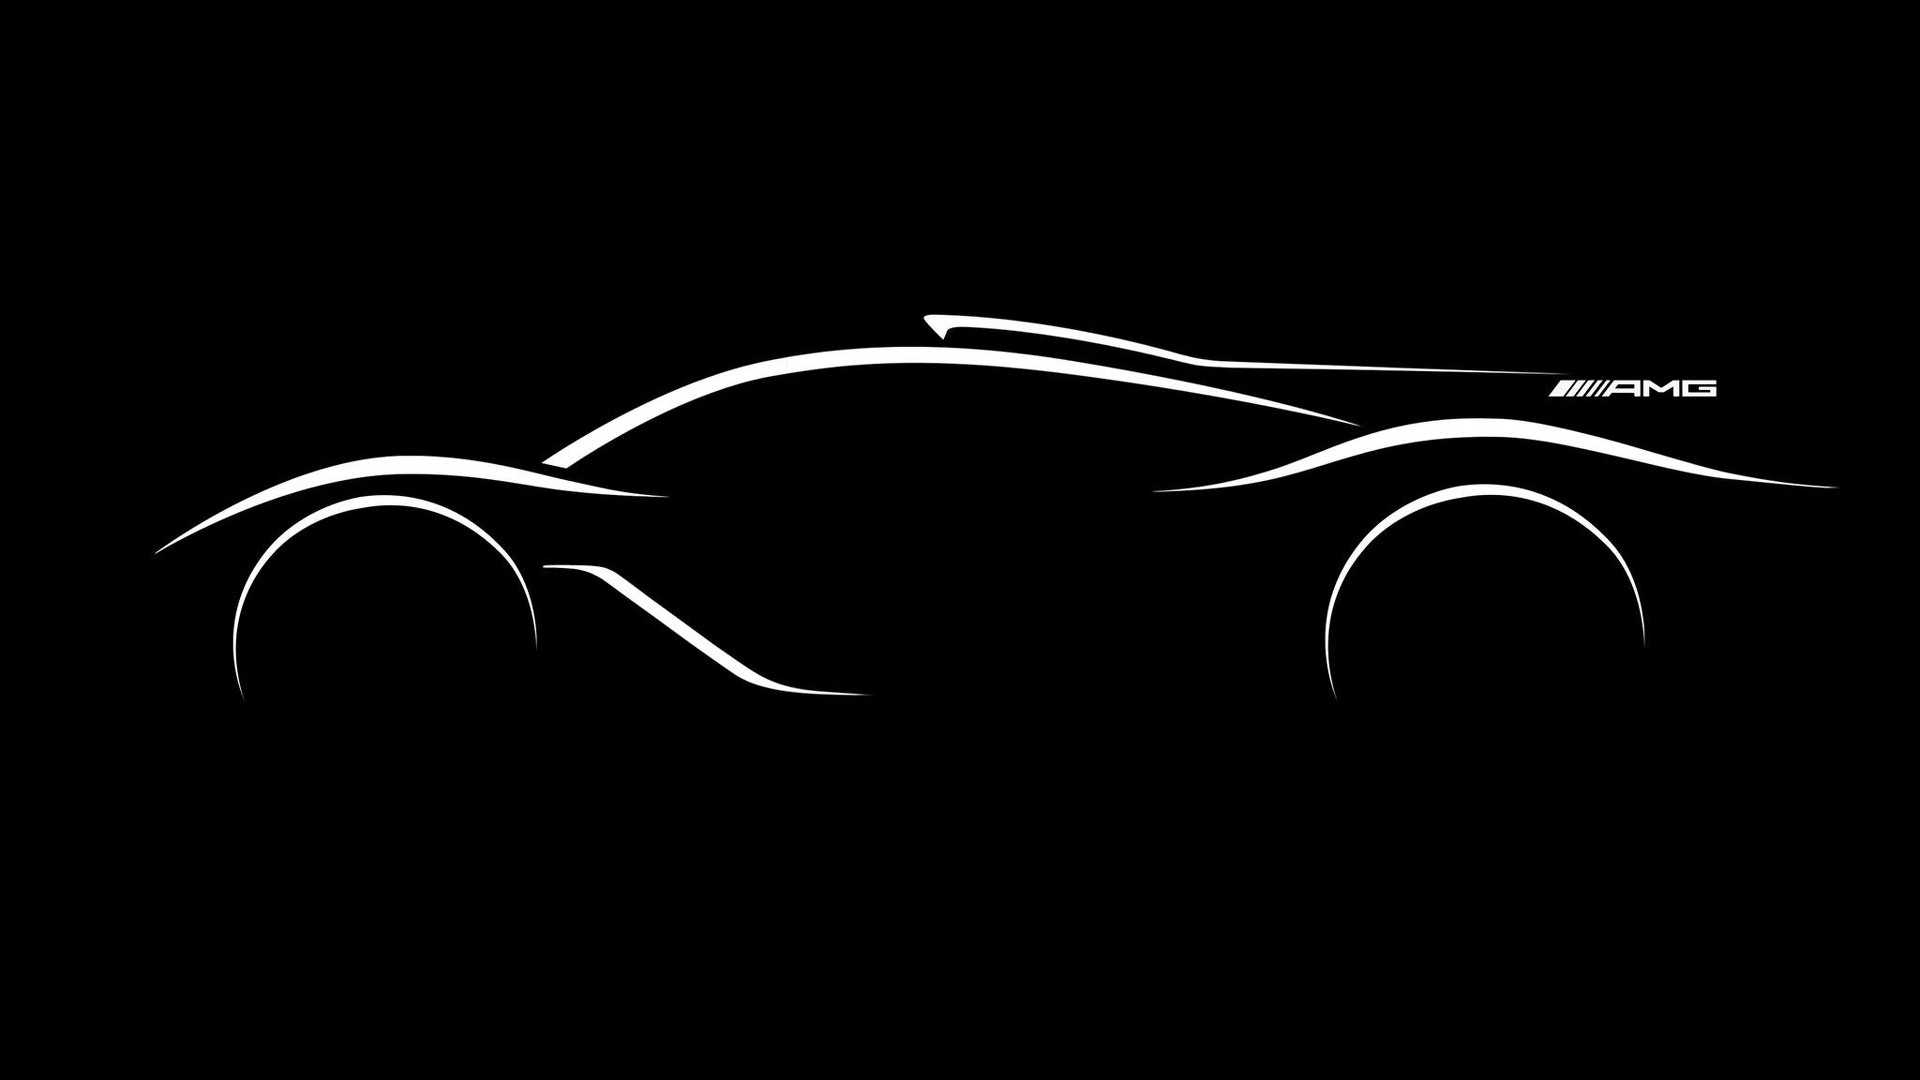 New Amg Project One Hypercar Details 11k Rpm 31k Engine Life